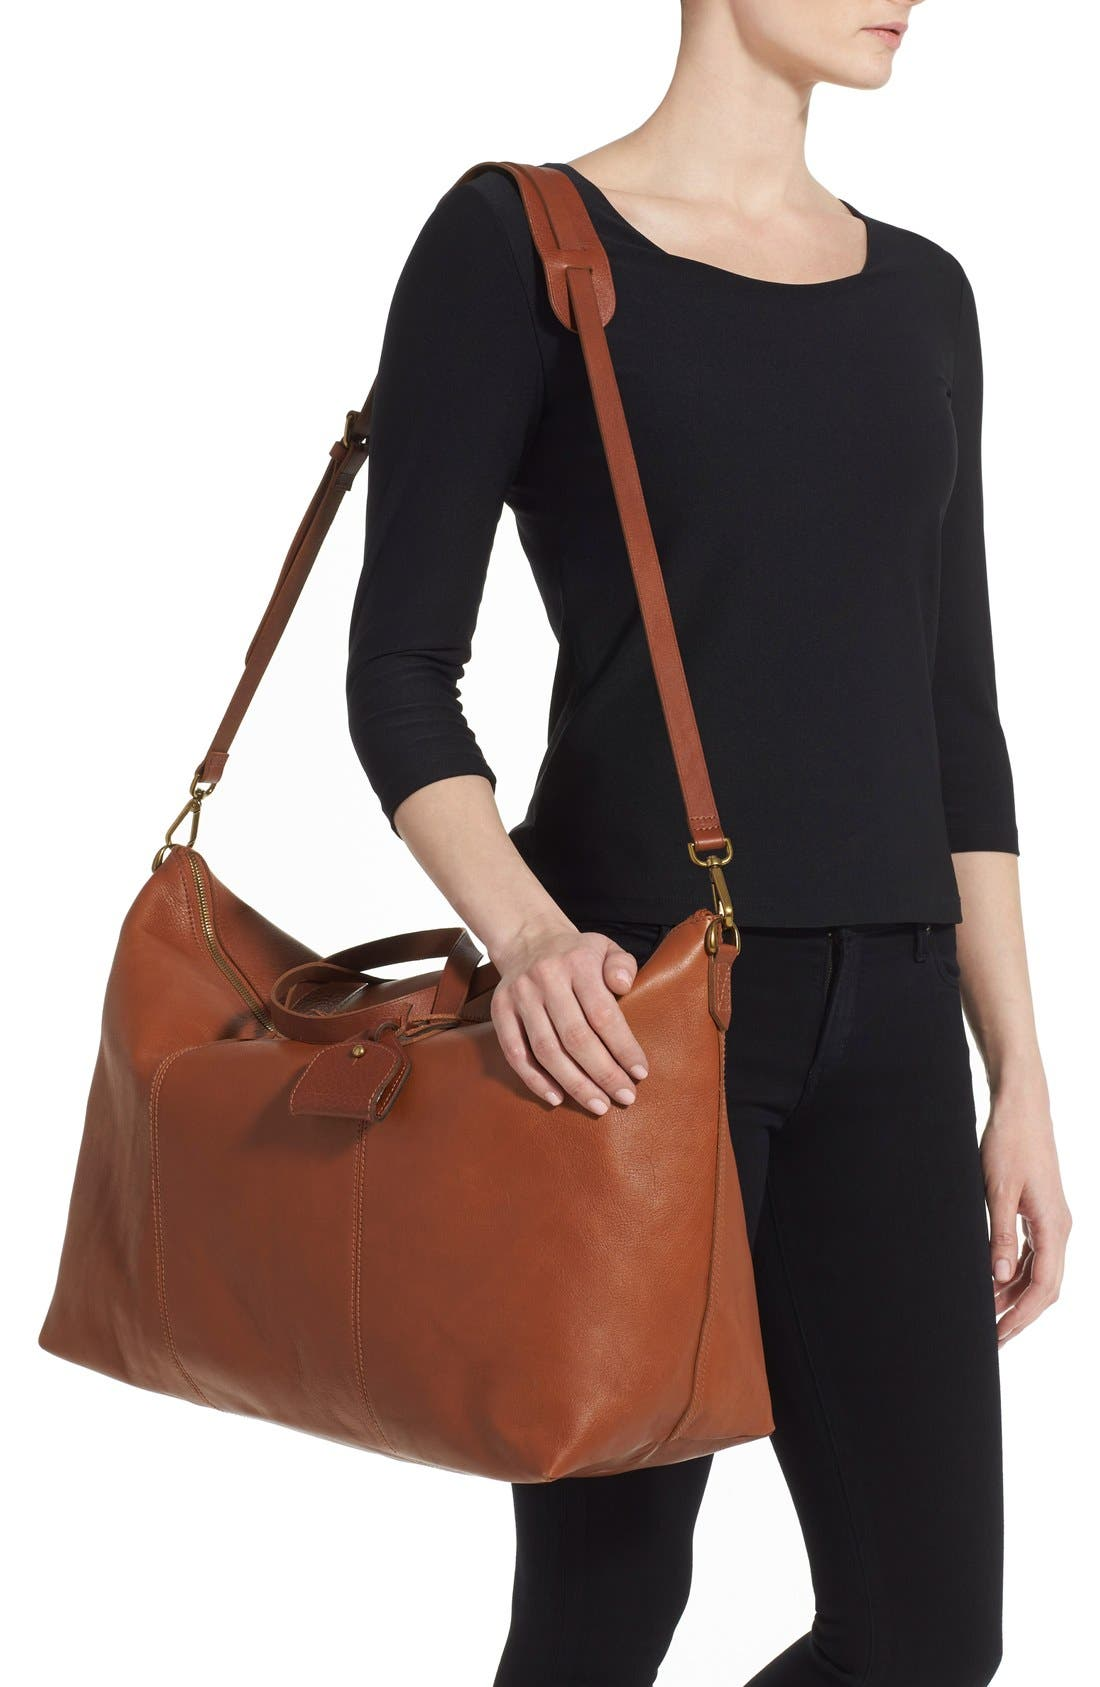 'Transport' Weekend Bag,                             Alternate thumbnail 2, color,                             ENGLISH SADDLE